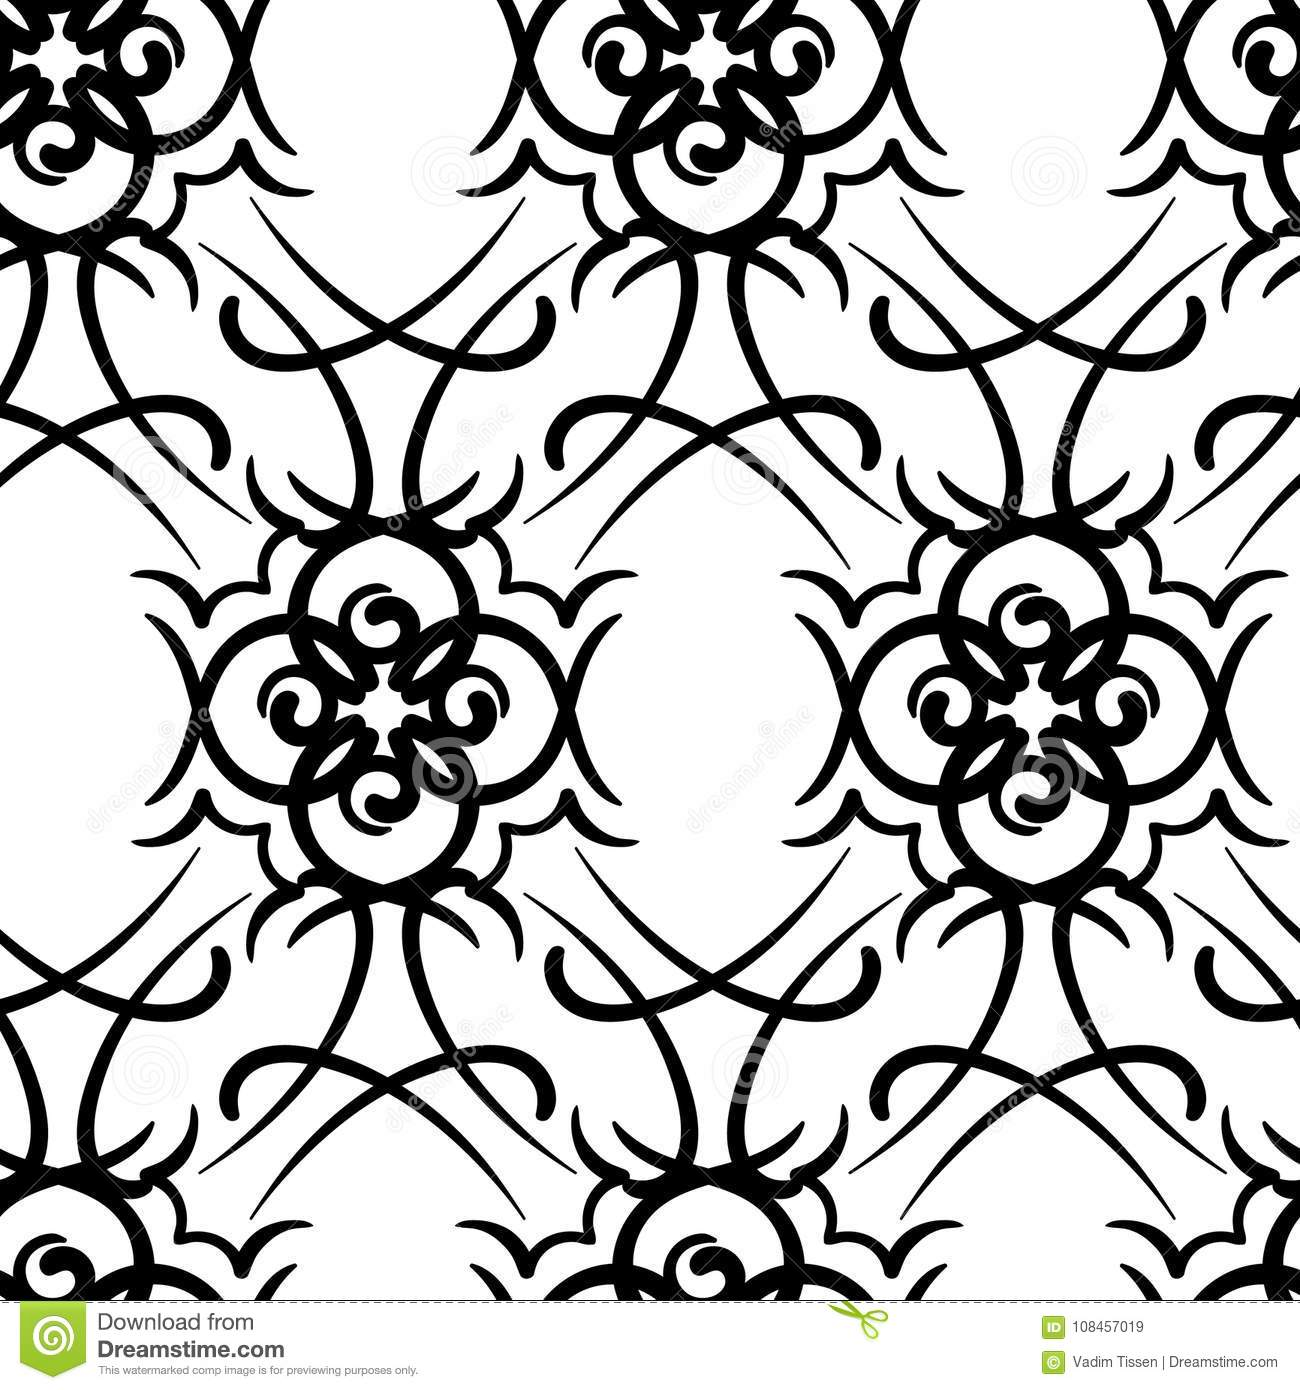 Seamless Repeating Modern Tribal Tattoo Background Design Stock